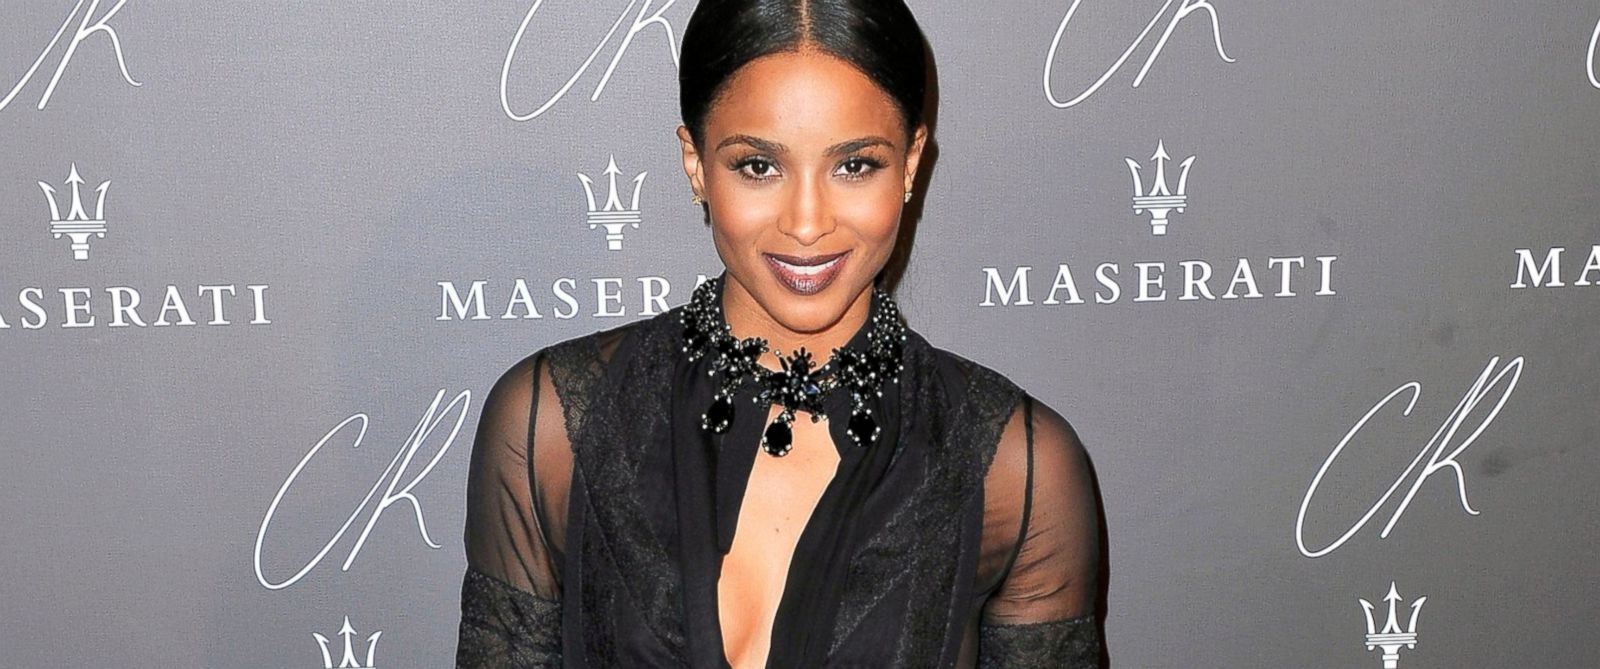 PHOTO: Ciara attends the CR Fashion Book Issue No.5 Launch Party Hosted by Carine Roitfeld and Stephen Gan at The Peninsula Paris, Sept. 30, 2014 in Paris.